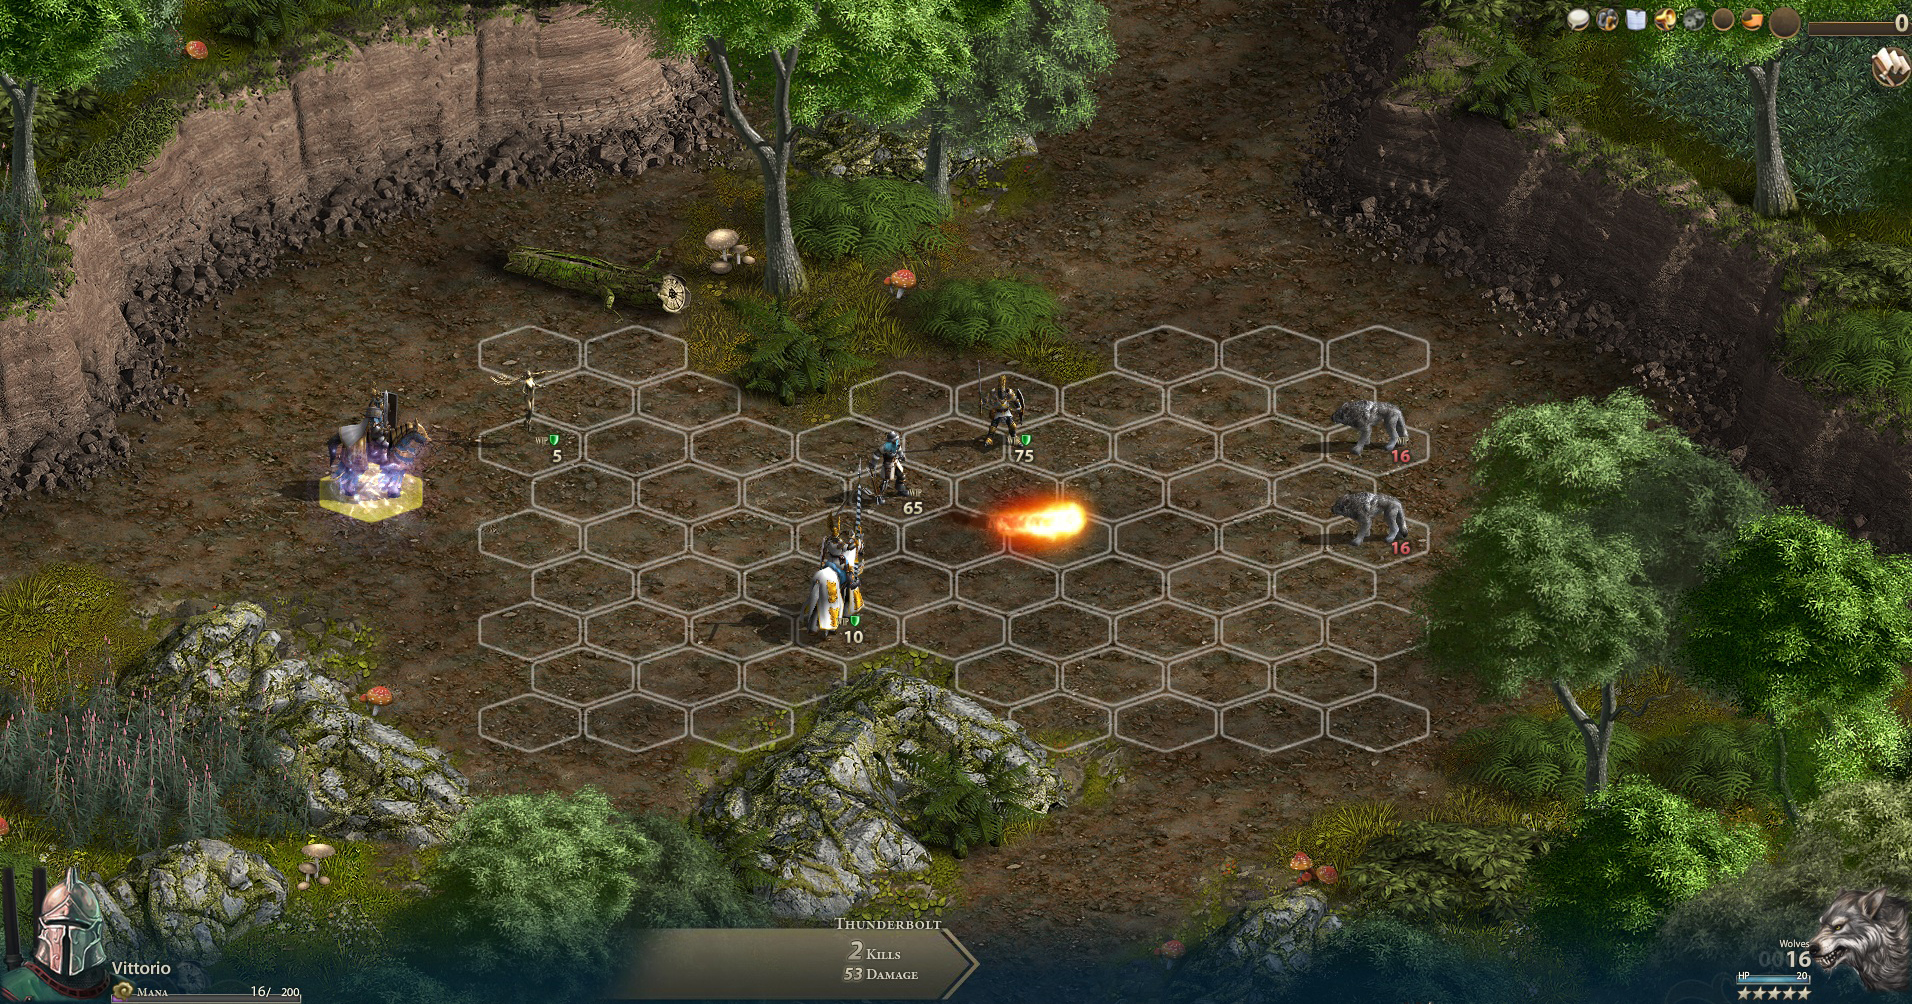 HQ Heroes Of Might And Magic Online Wallpapers | File 2057.16Kb